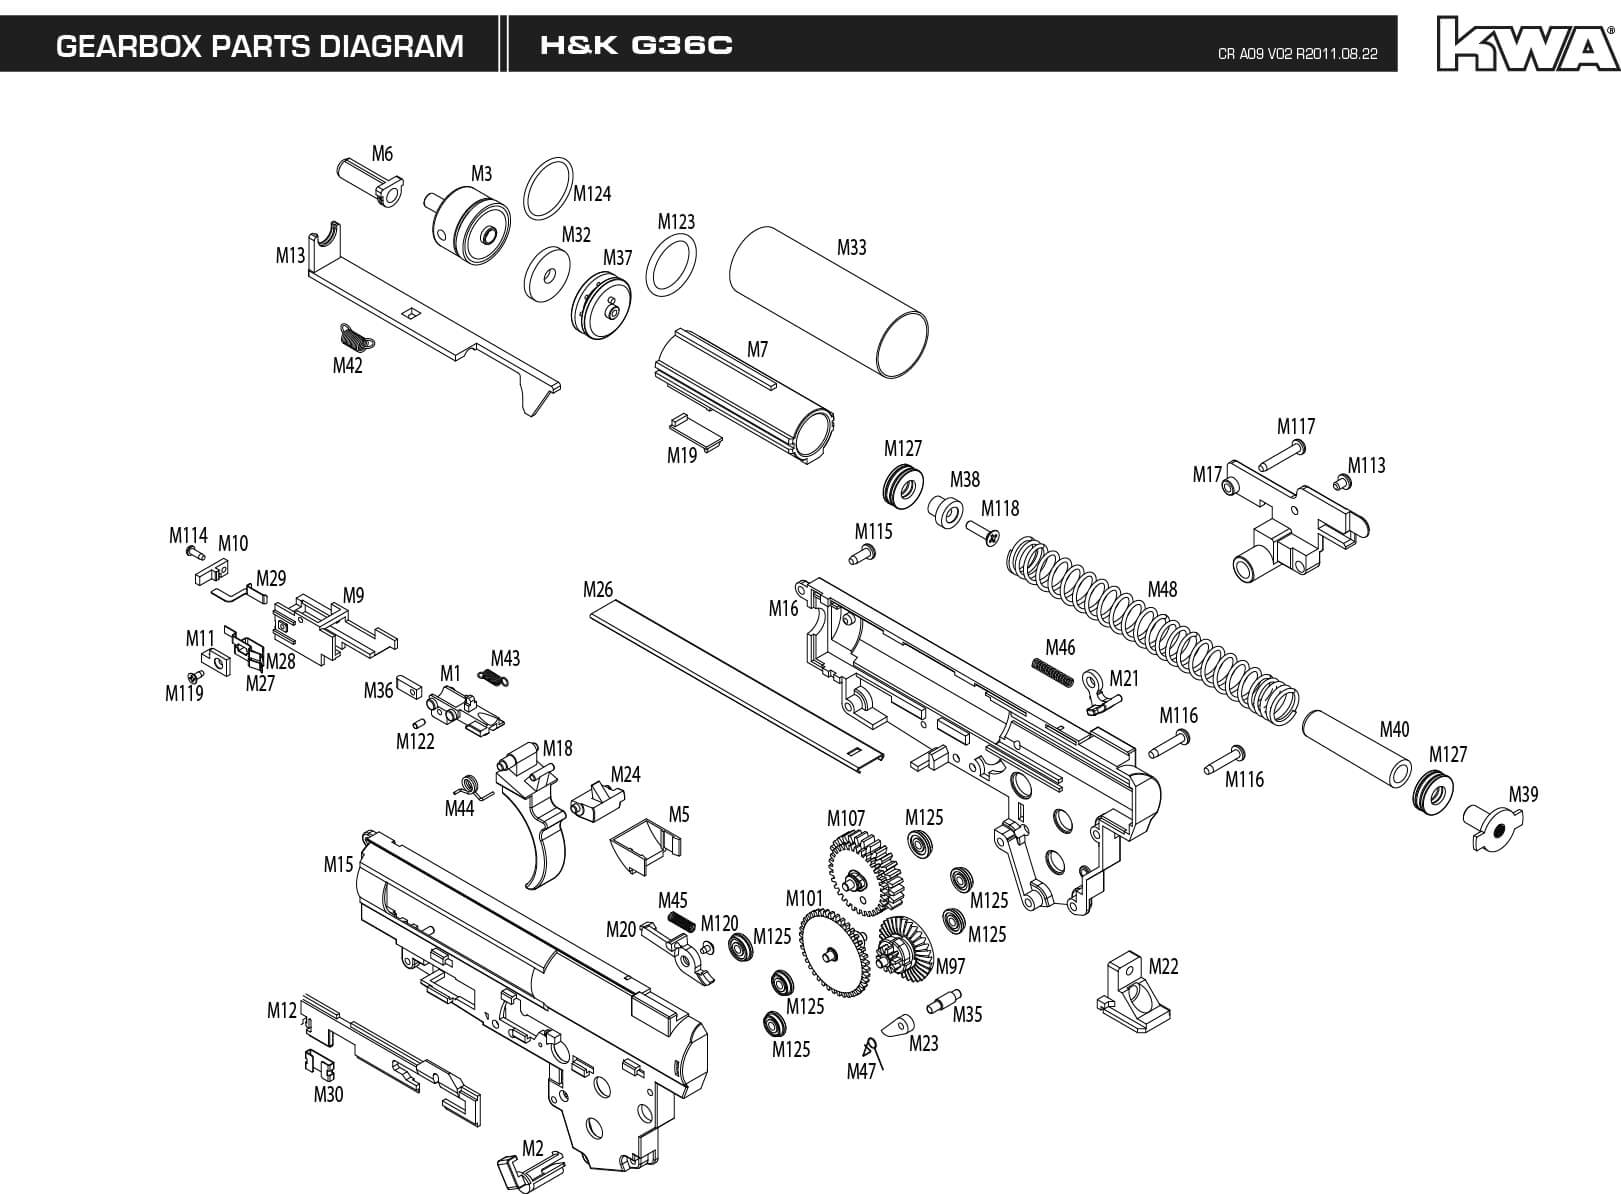 Downloads Kwa Airsoft 22 Rifle Parts Diagram Engine Car And Component G36c Gearbox